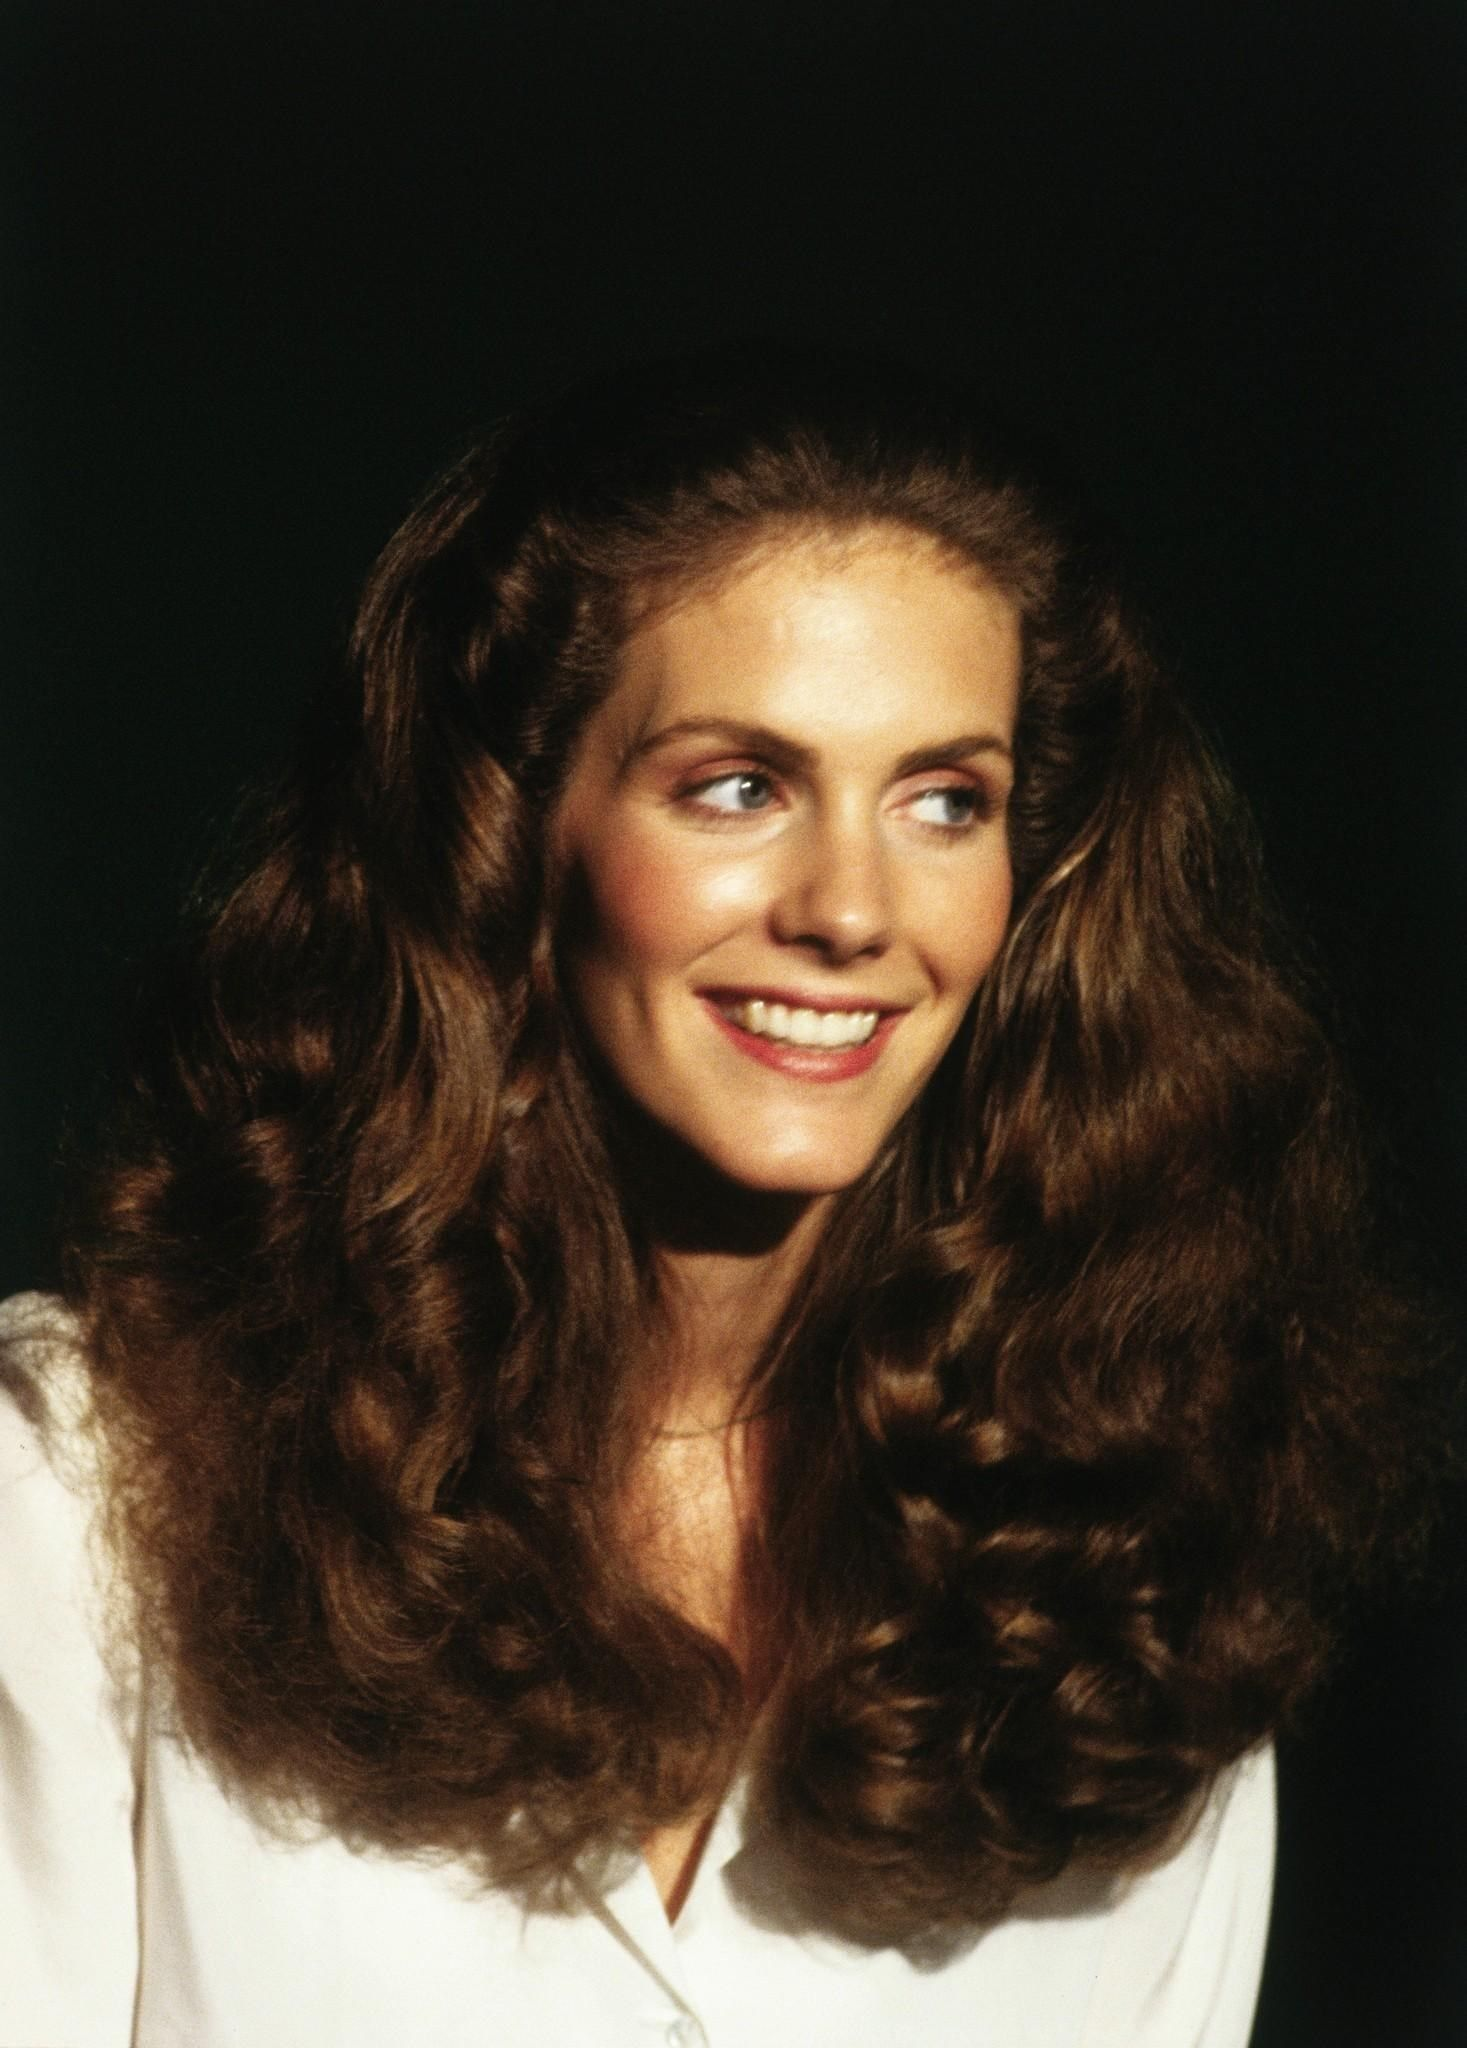 Tits Julie Hagerty naked photo 2017